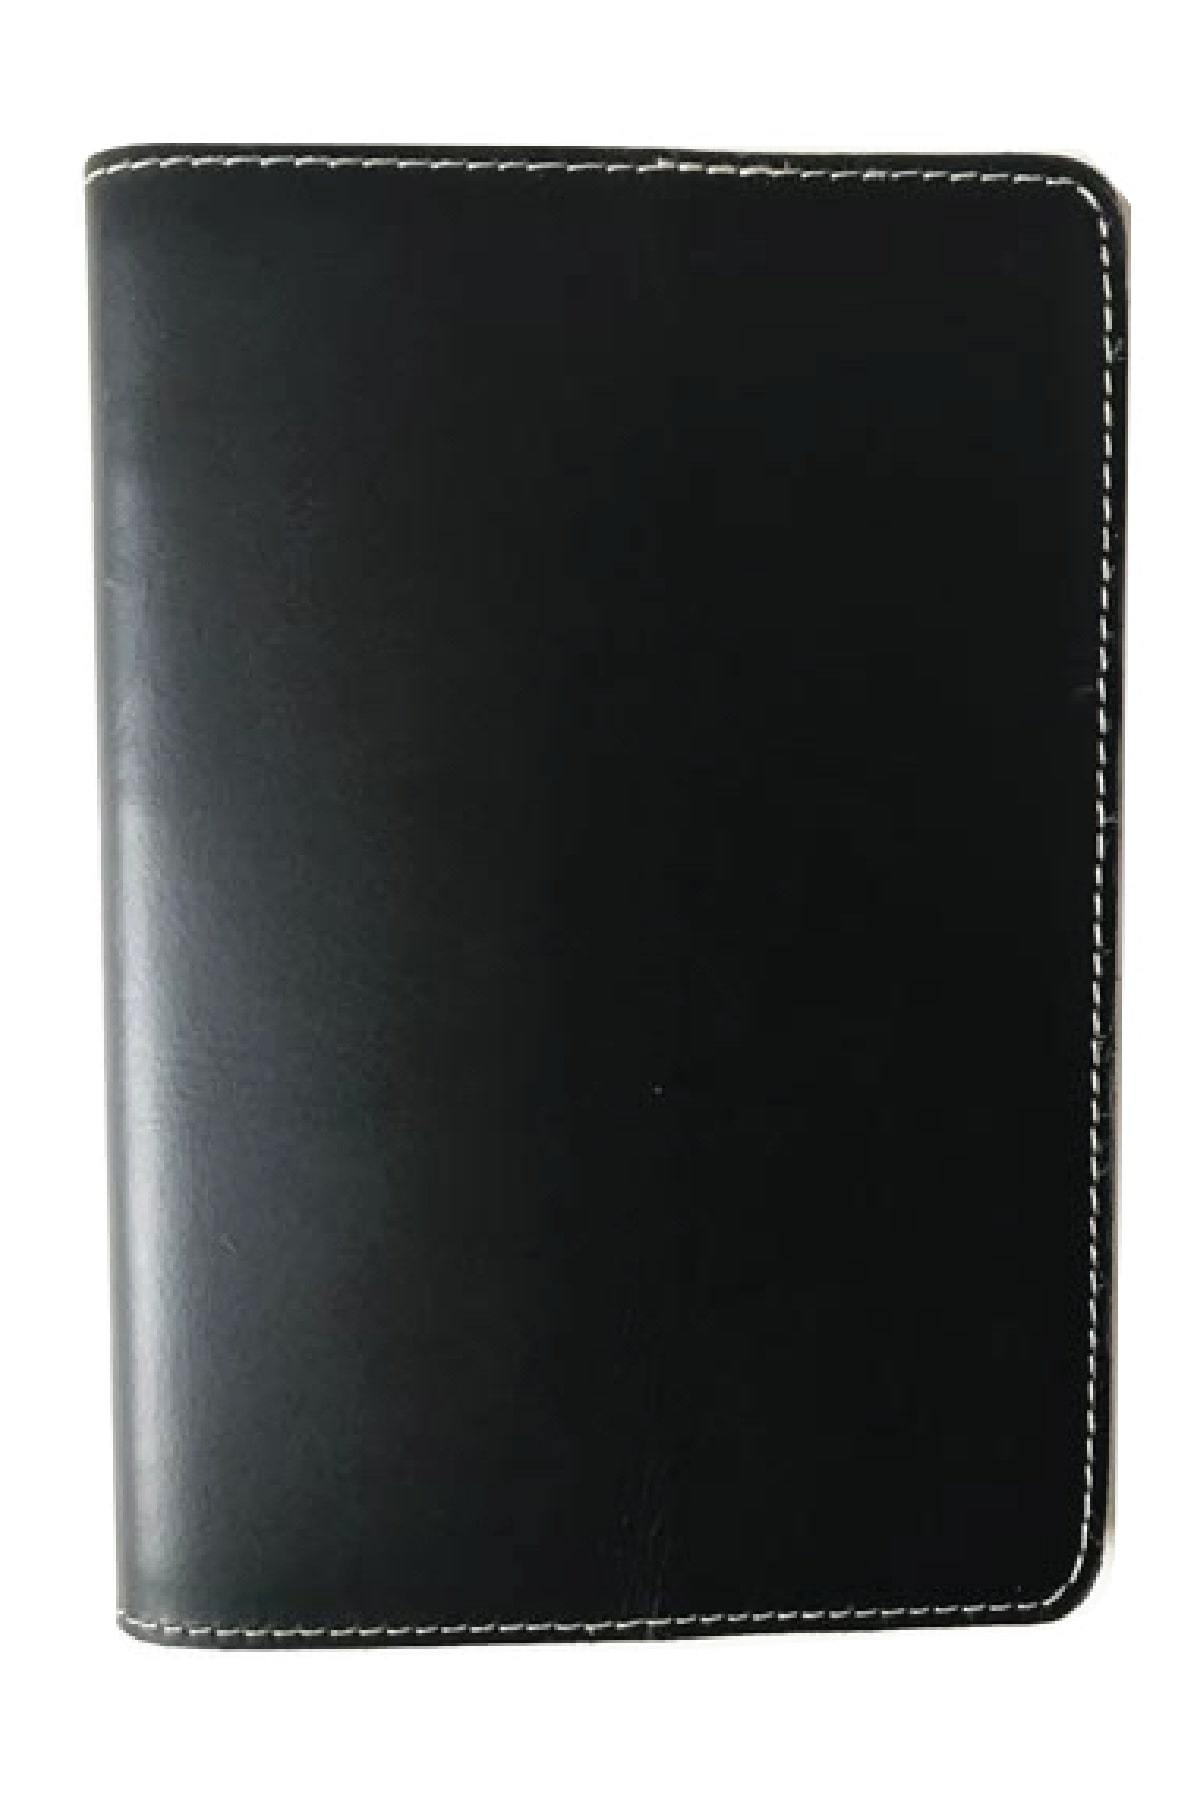 paper-sunday-Leather Journal: Black-christian-personalized-scripture-Leather Journal-bible-verses-about-love-faith-hope